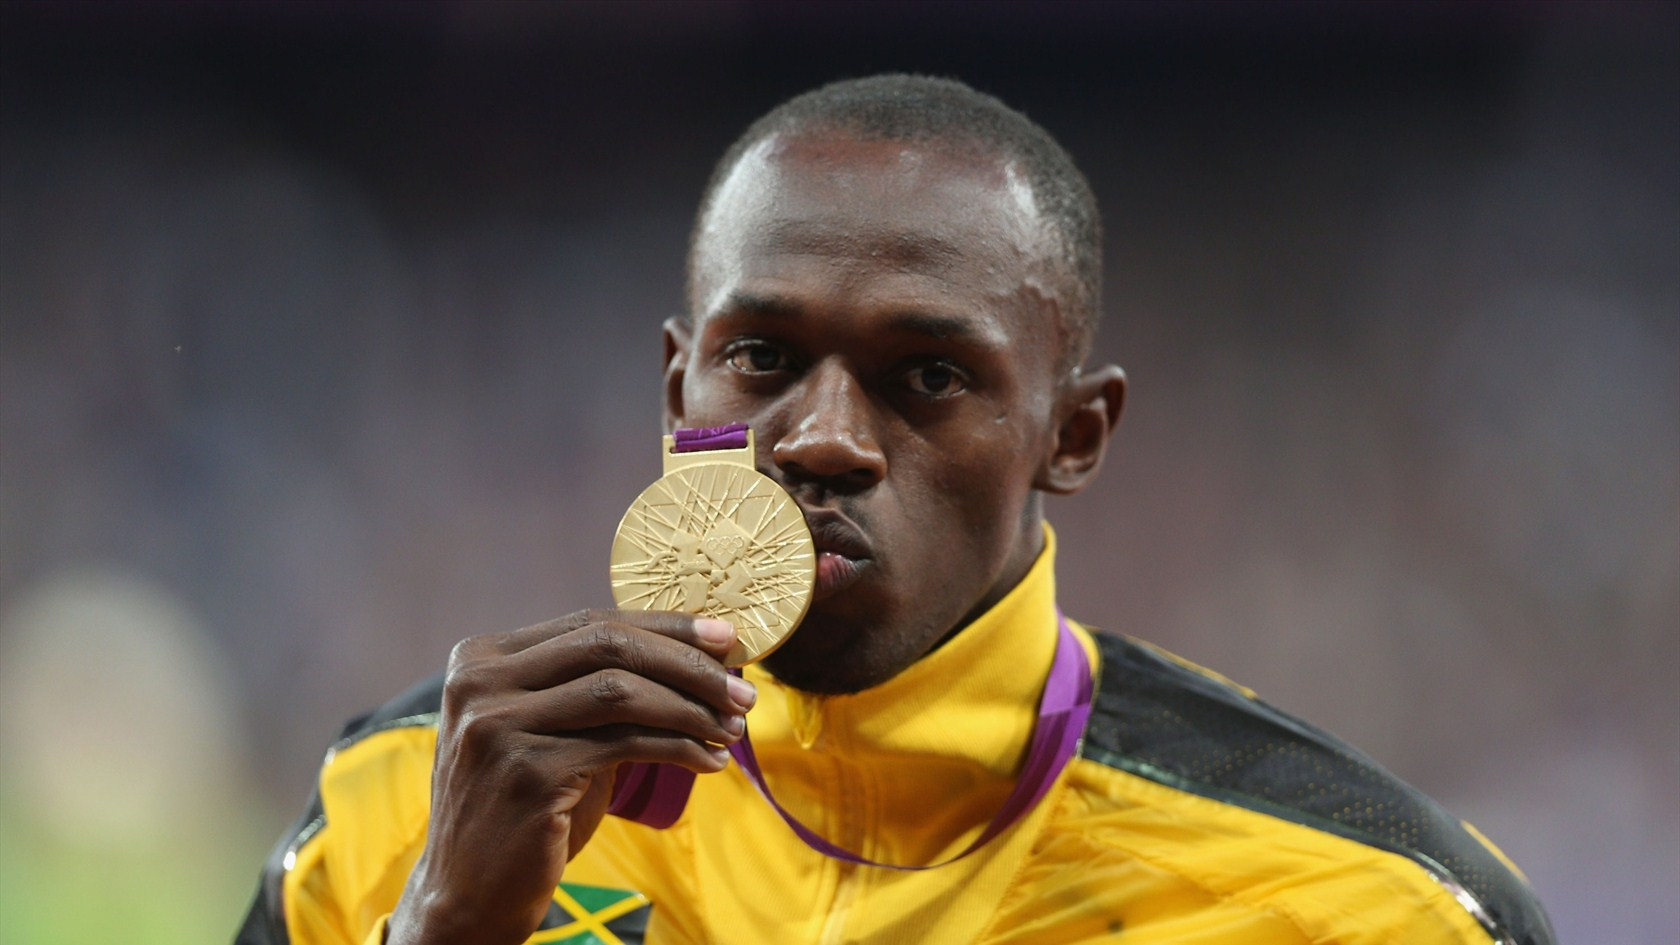 Usain Bolt will be going for gold come the Rio Olympics